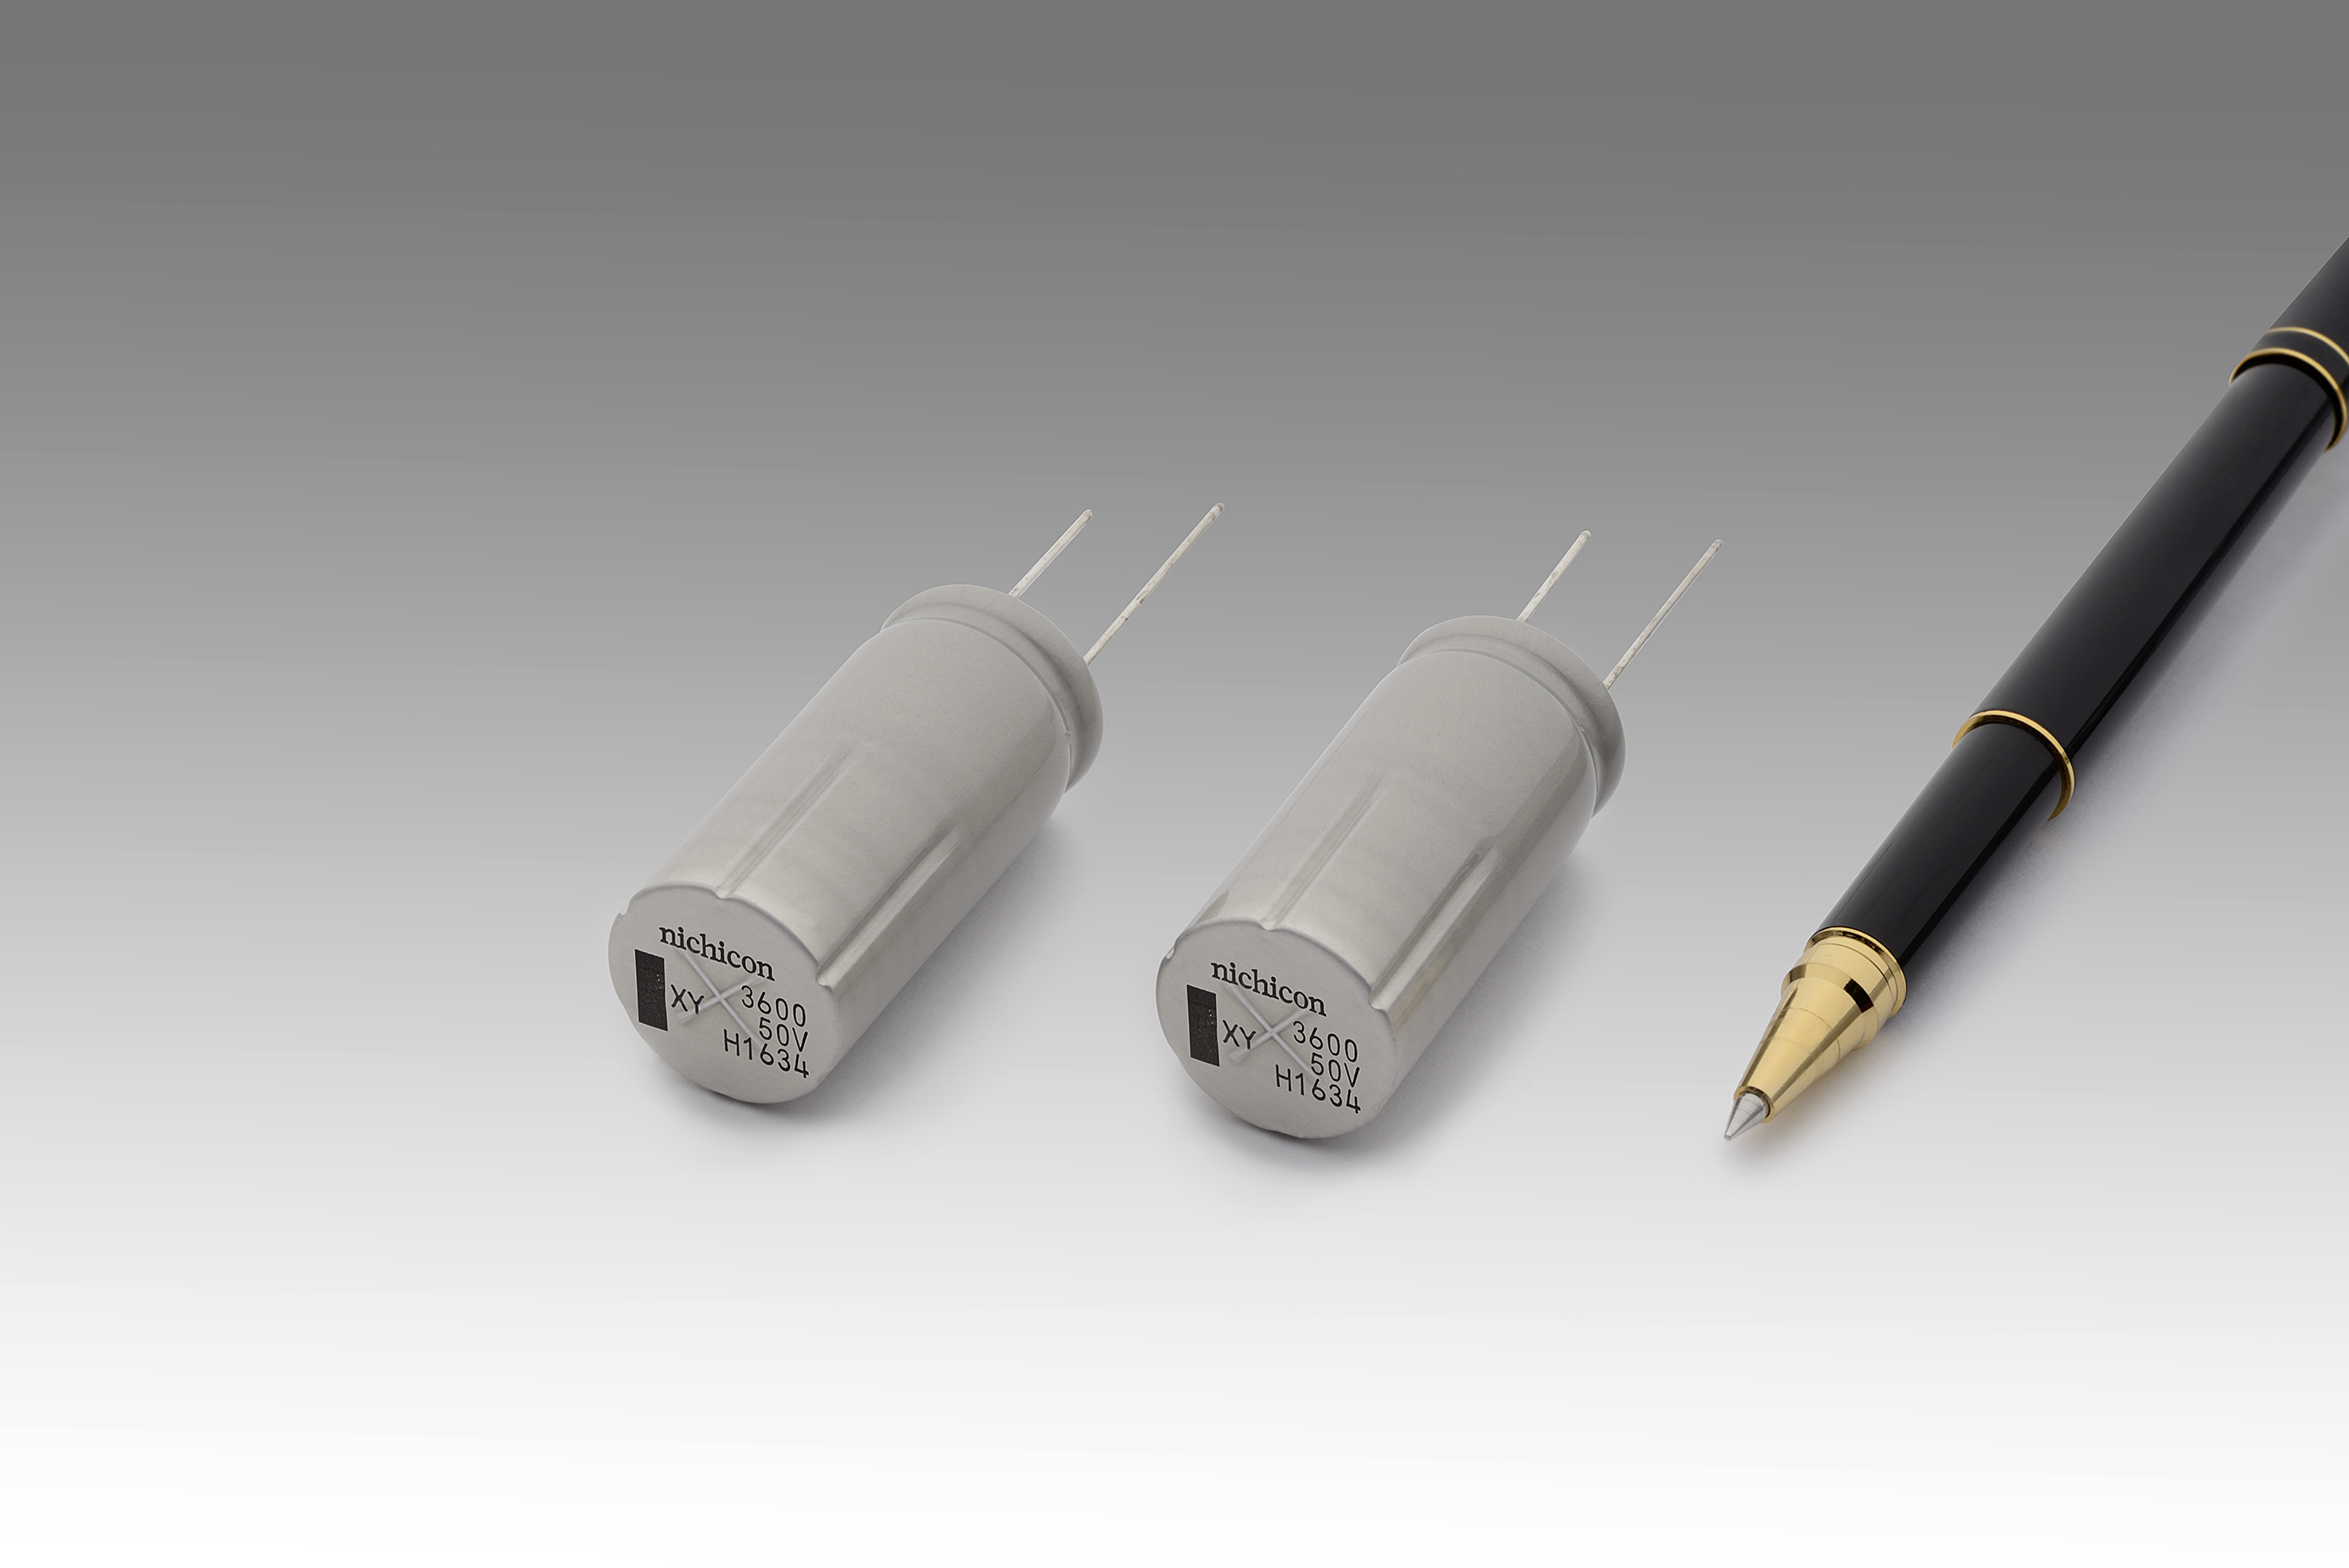 Image 4: The UXY series of vibration-resistant lead-type aluminum electrolytic capacitors